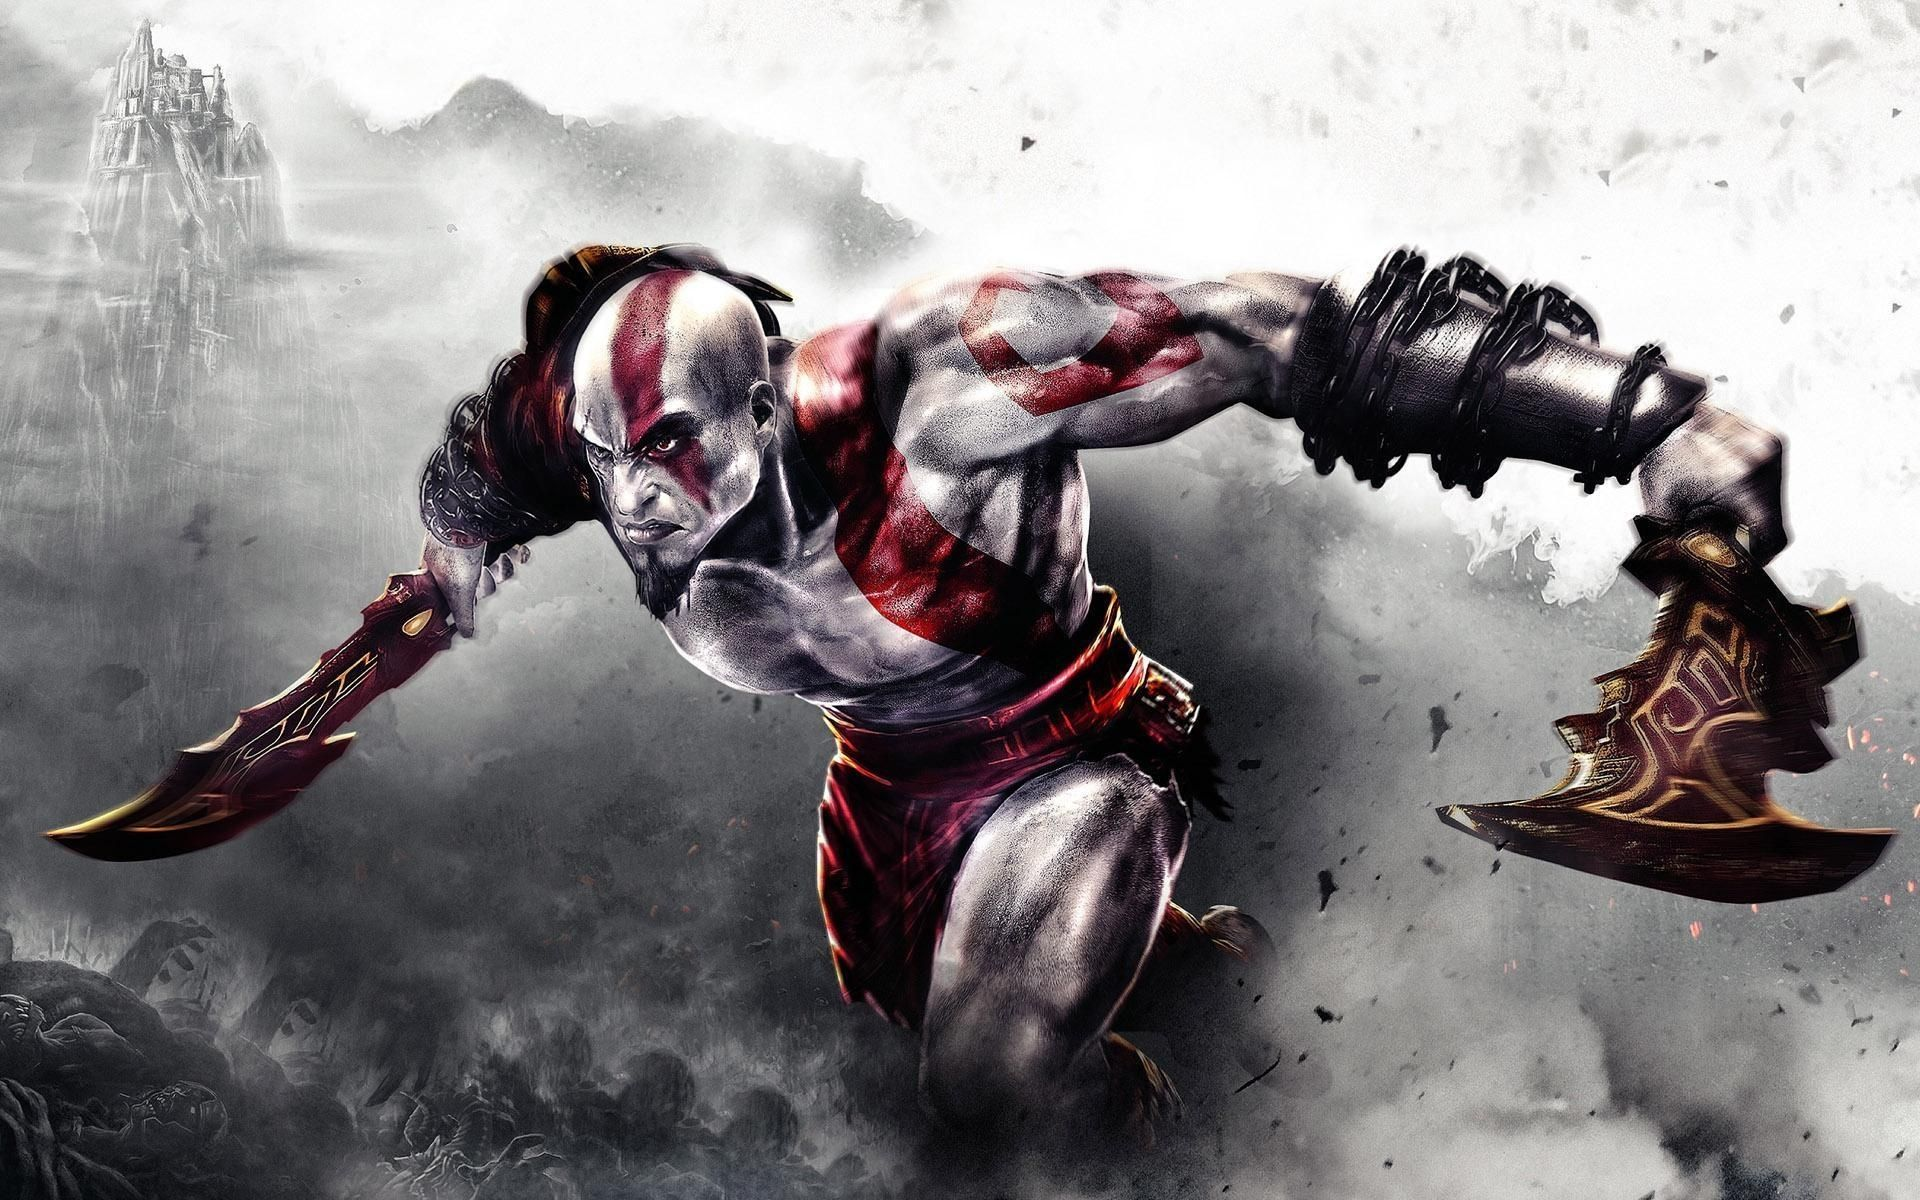 10 New Hd Wallpapers 1080p Games Full Hd 1920 1080 For Pc Background Kratos God Of War God Of War Gaming Wallpapers Hd